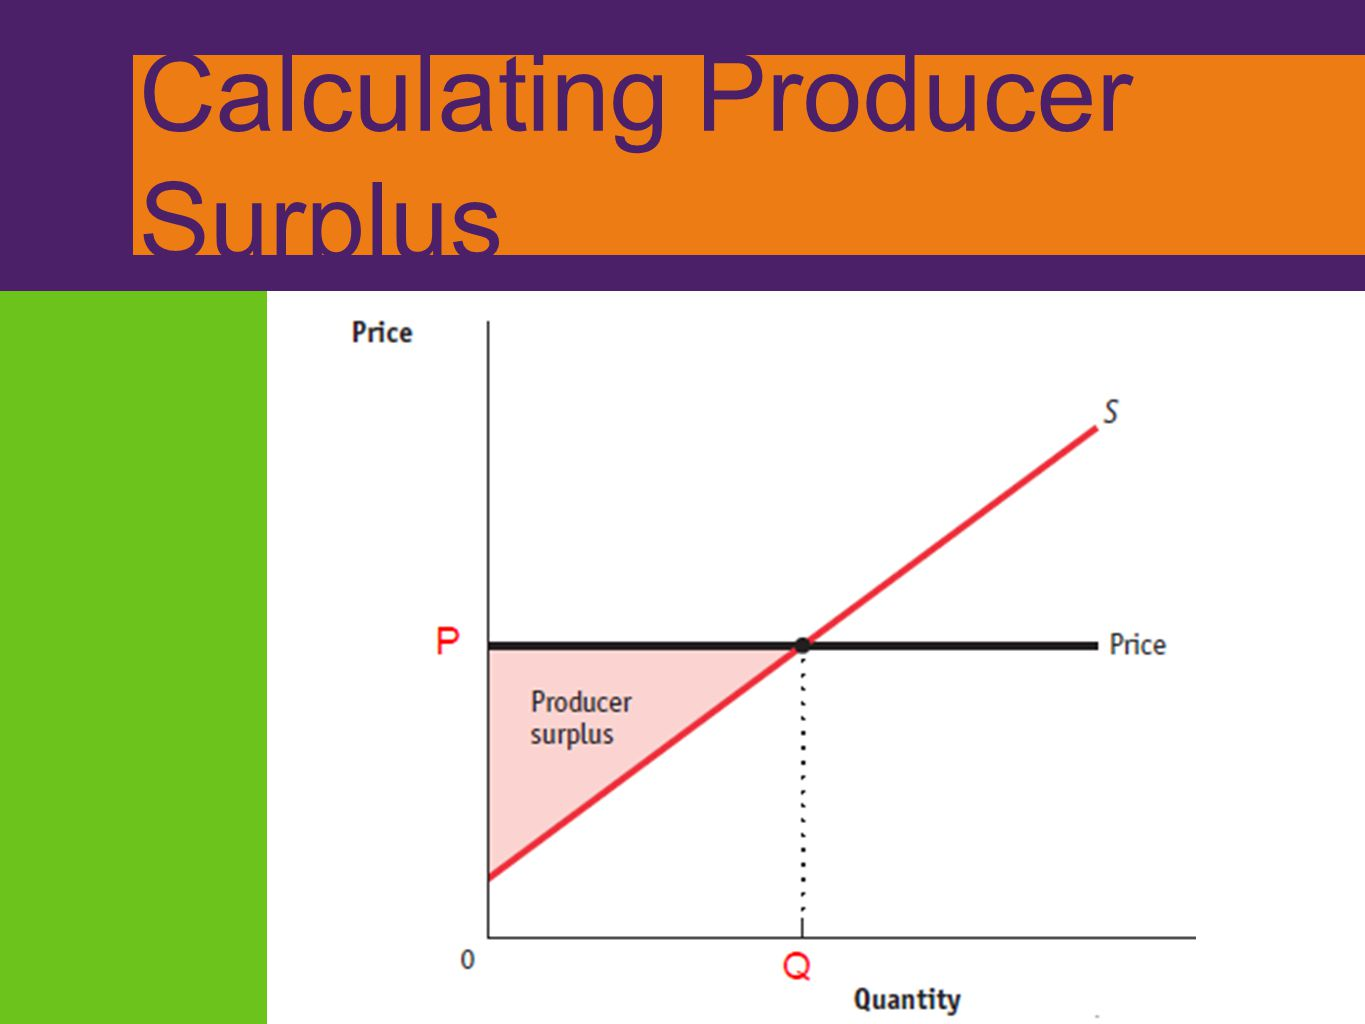 Calculating Producer Surplus